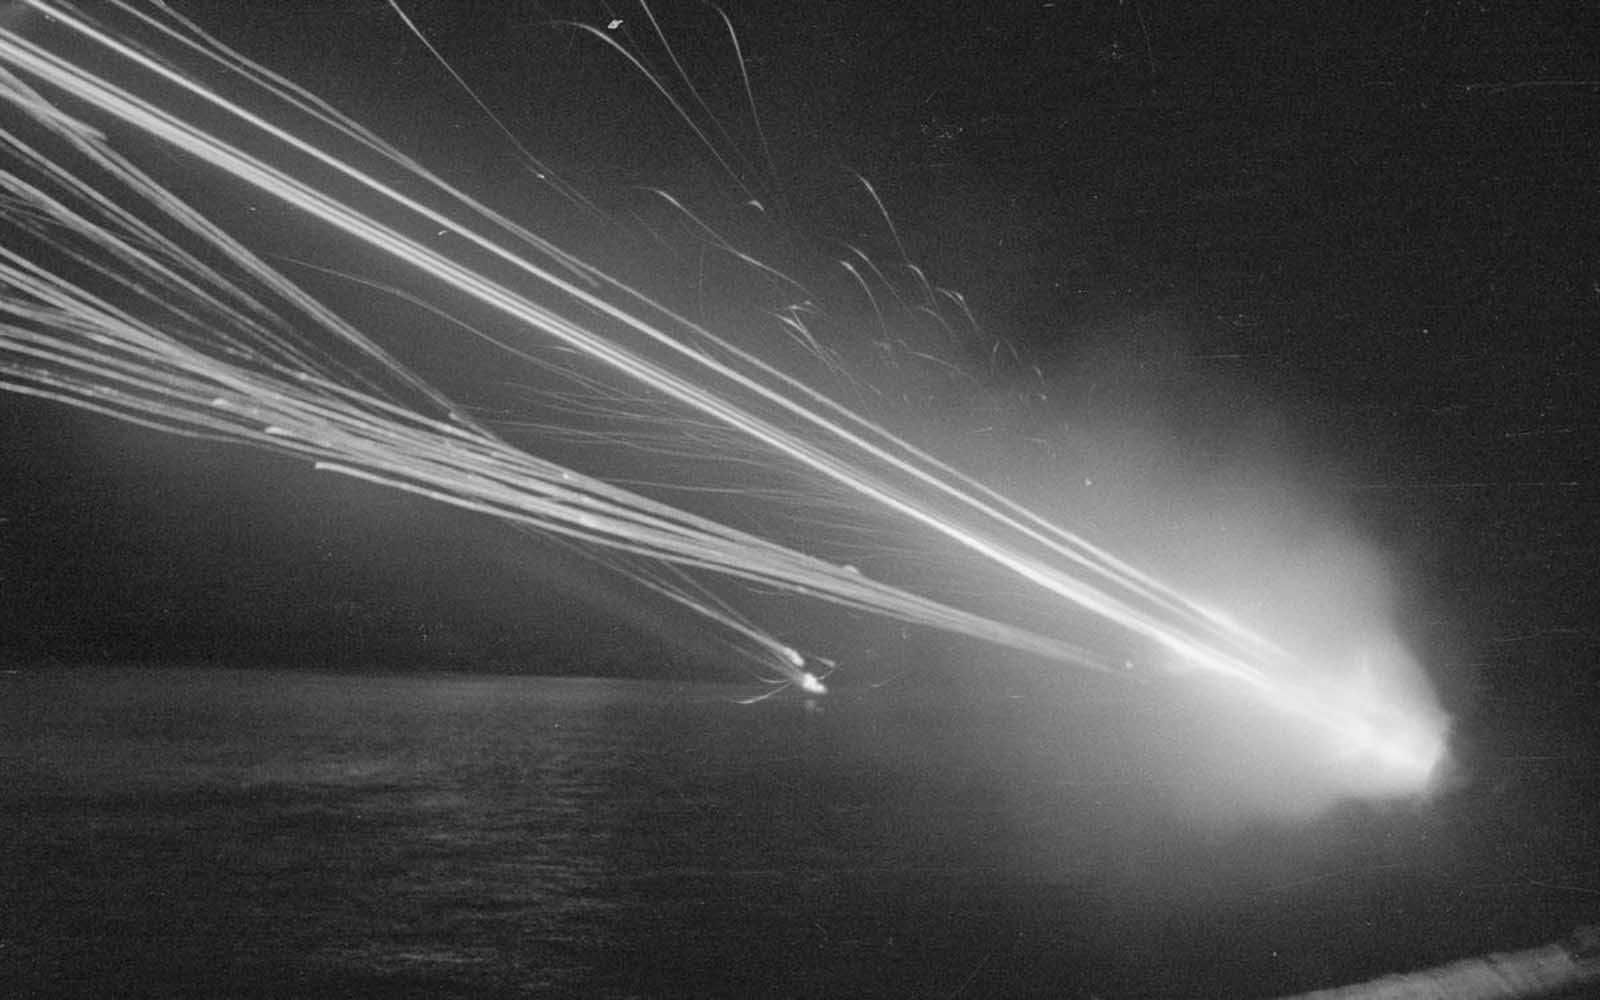 Muzzle flashes greet enemy bombers. Picture taken during bomb attacks in April-May 1943.